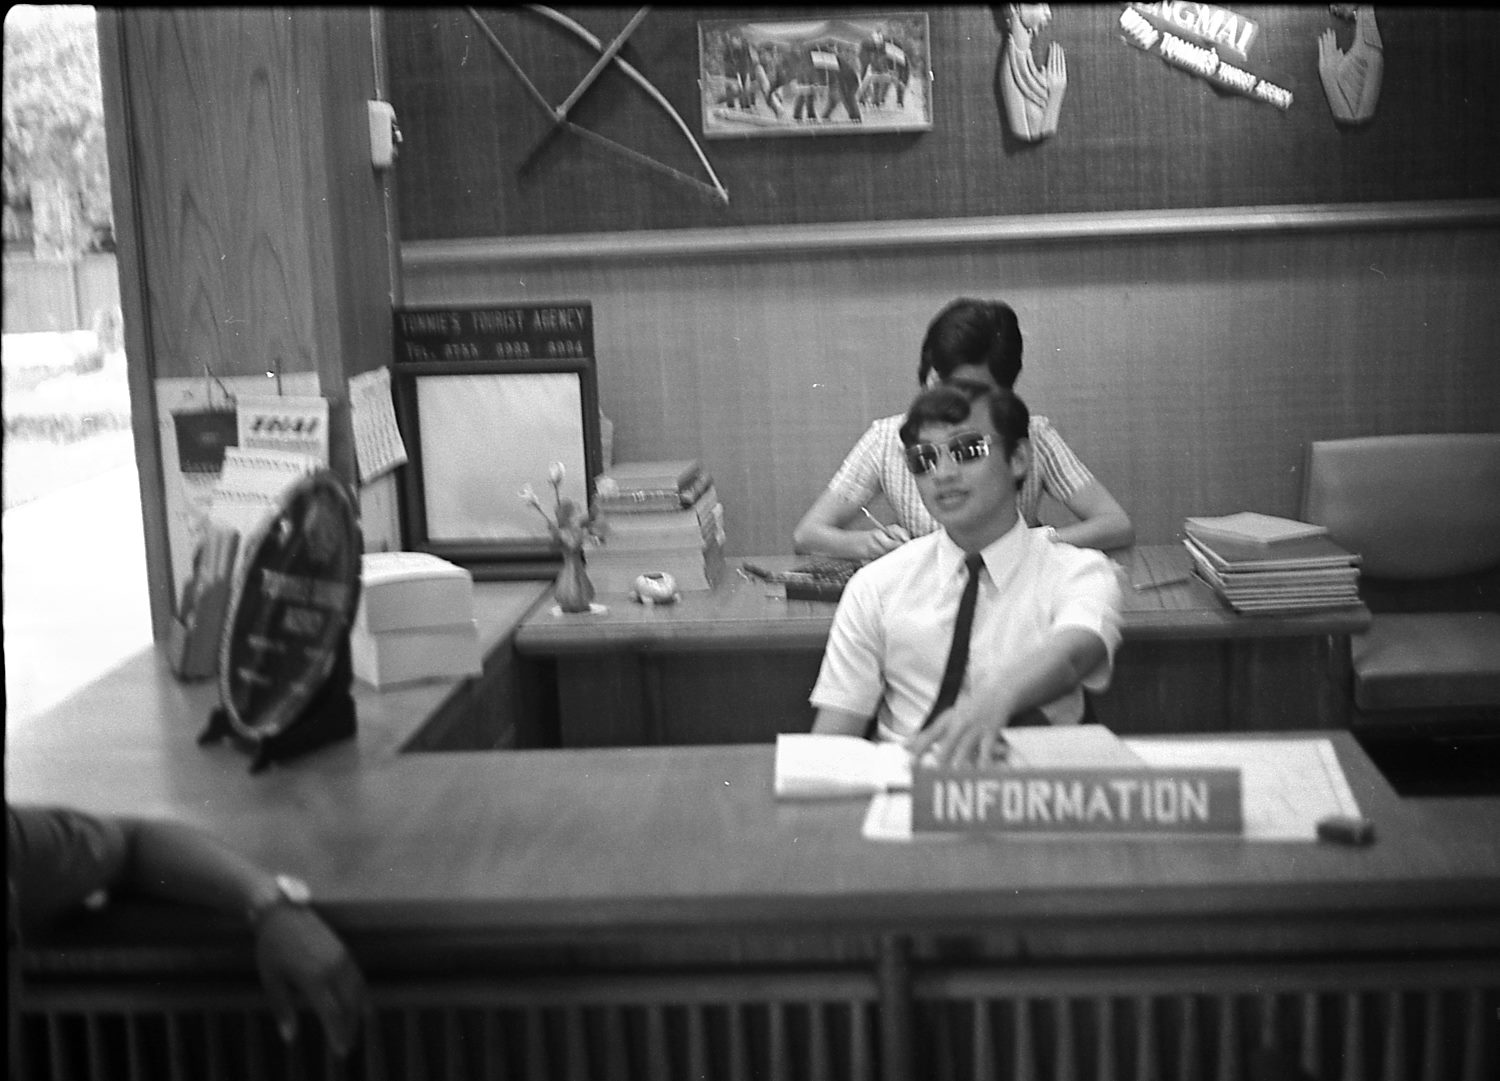 Tommie's Tourist Agency 1969. Picture by Jerry E.Reed.